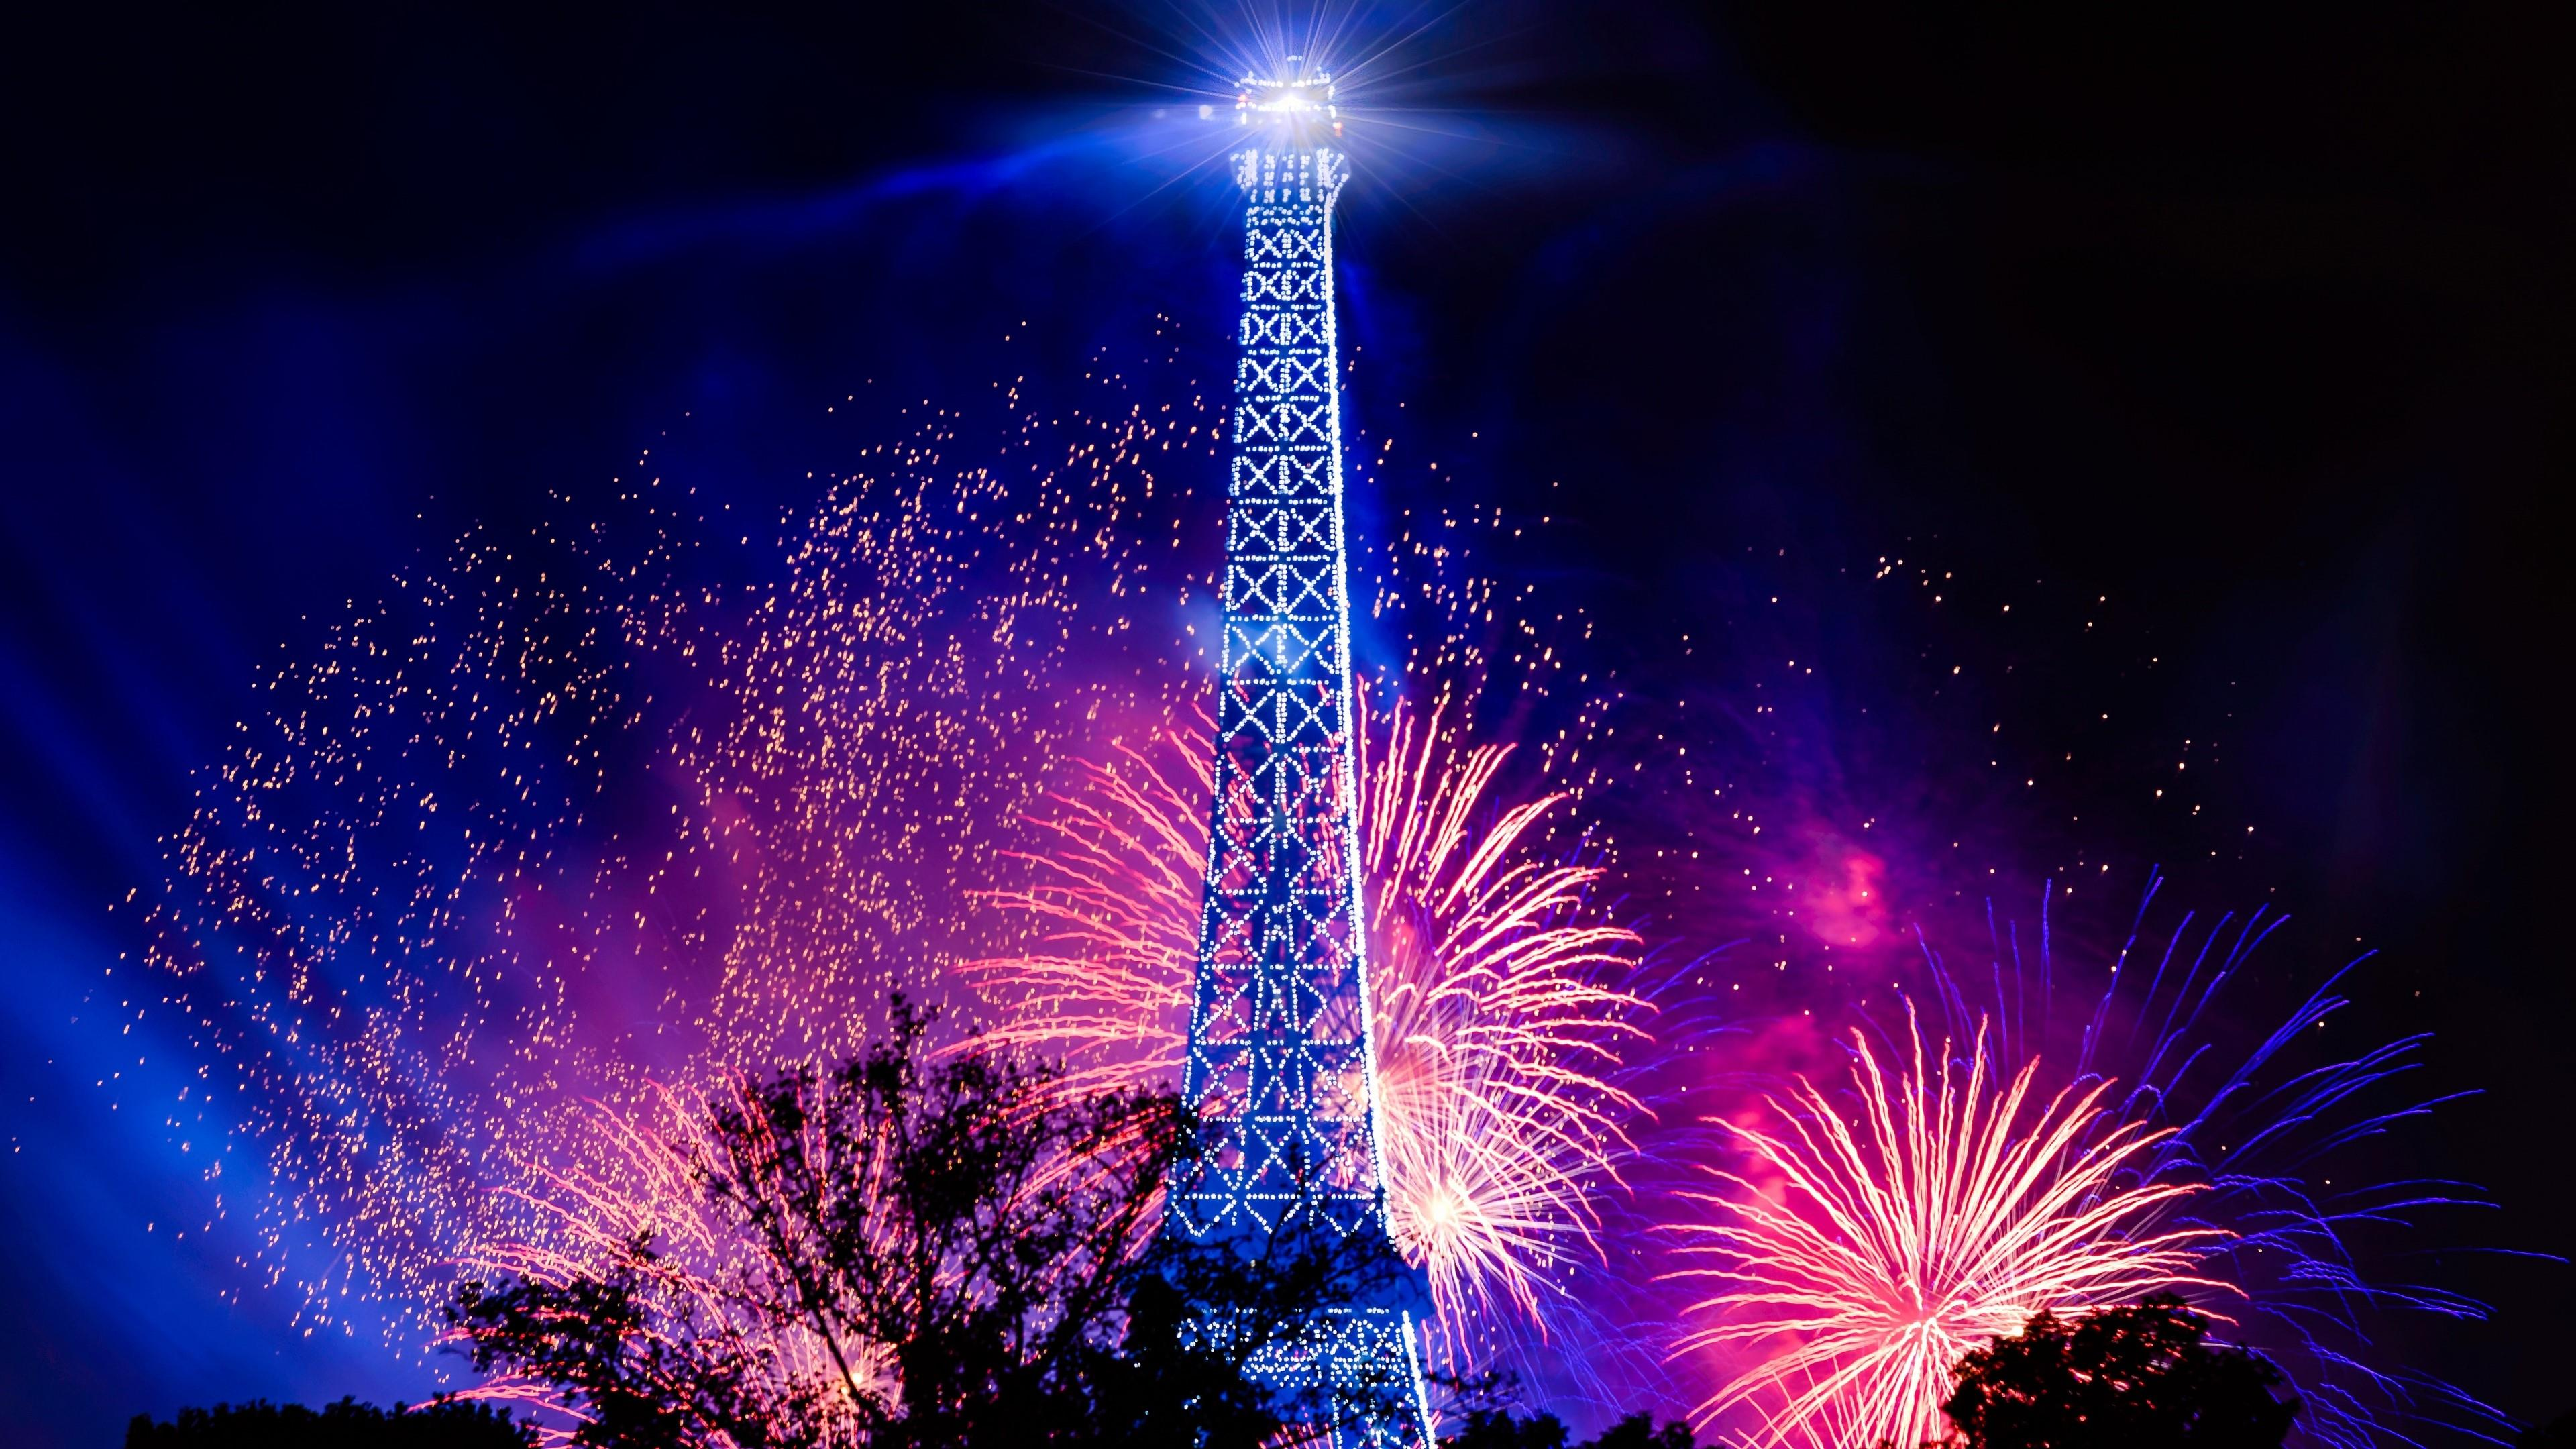 Fireworks At Eiffel Tower Wallpaper - Happy New Year 2019 Status , HD Wallpaper & Backgrounds